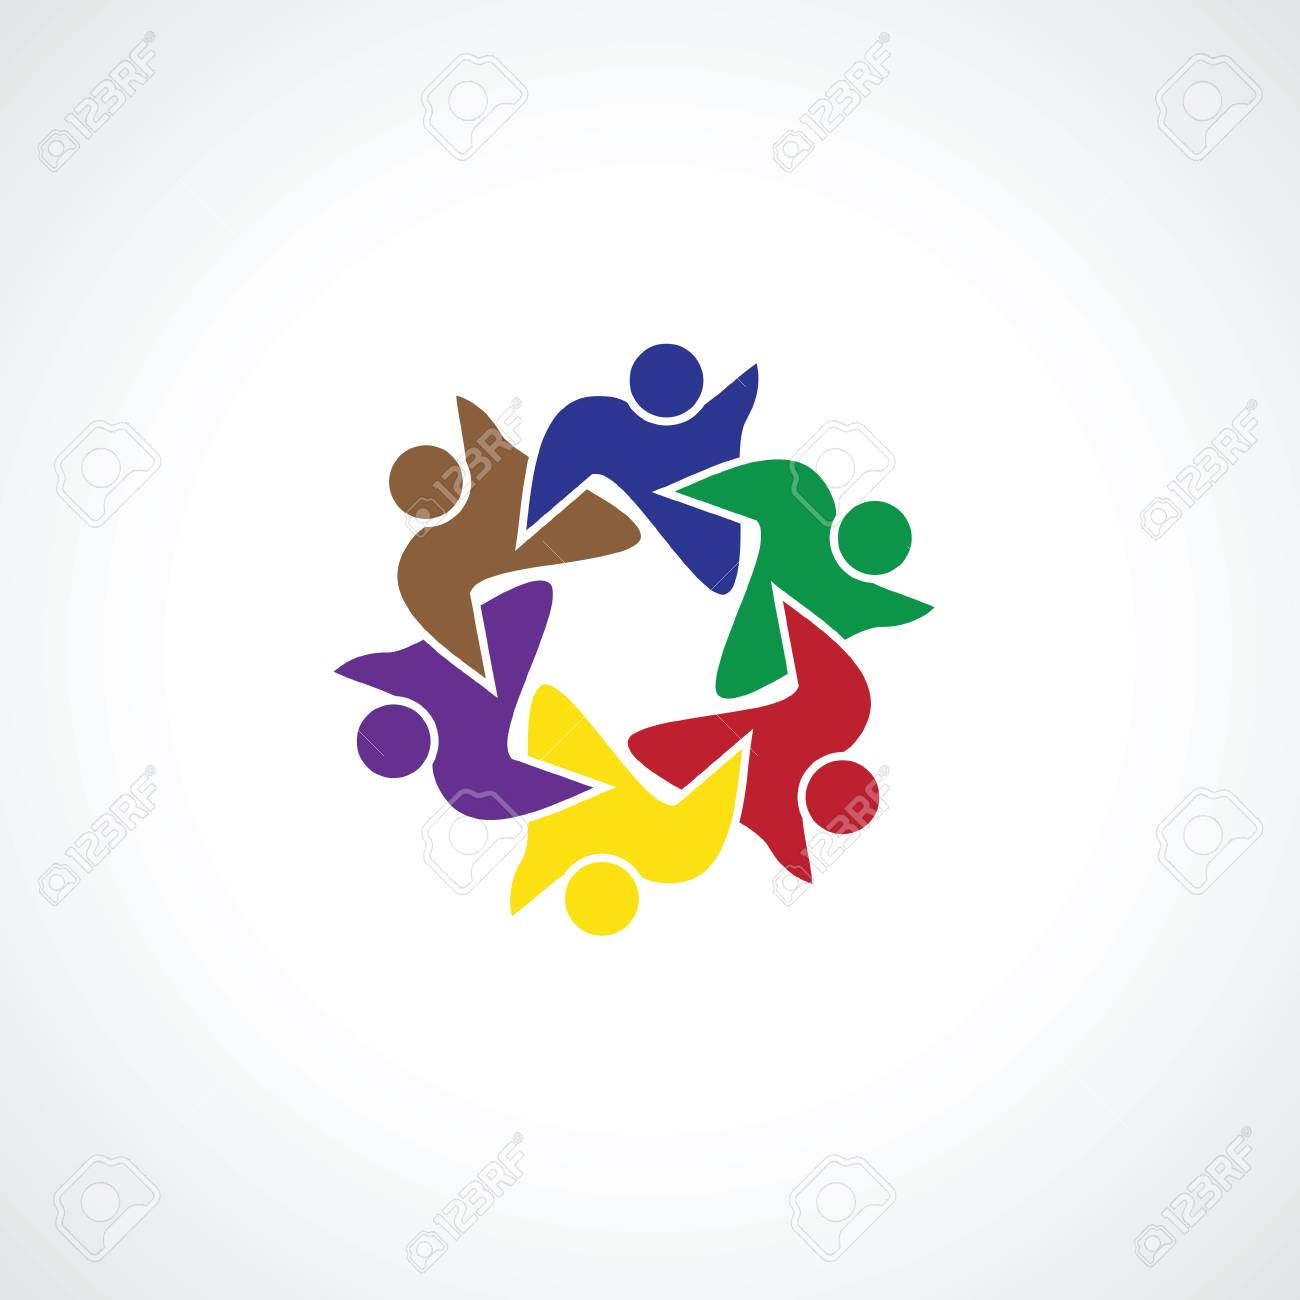 six people icon  people friends logo concept vector icon